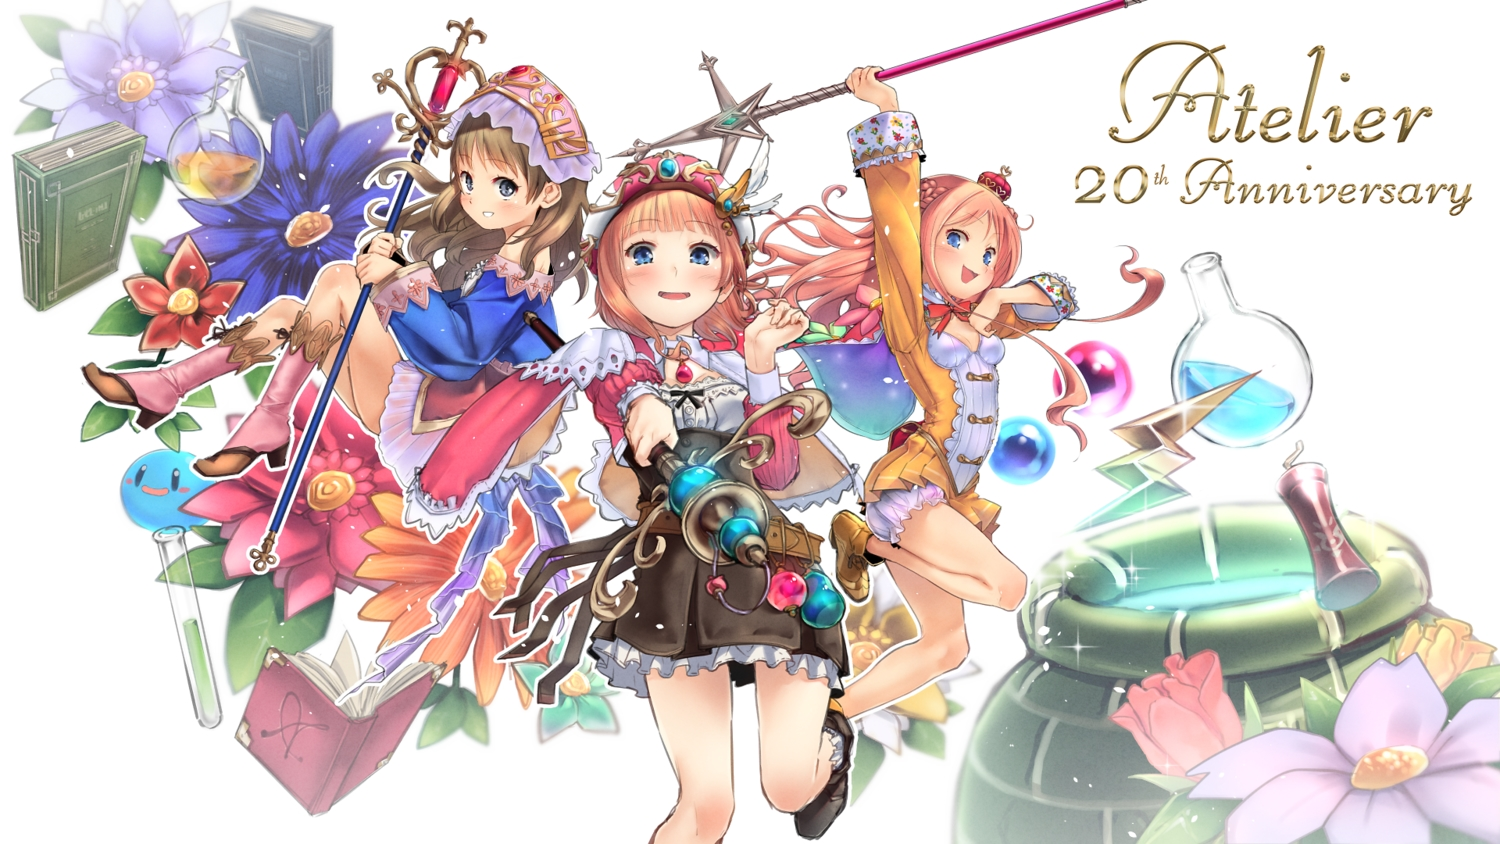 atelier atelier_meruru atelier_rorona atelier_totori bloomers blue_eyes blush book boots brown_hair crown dress flowers gray_eyes hat headdress long_hair merurulince_rede_arls pink_hair rororina_fryxell skirt staff sumi_(oyasumie) totooria_helmold